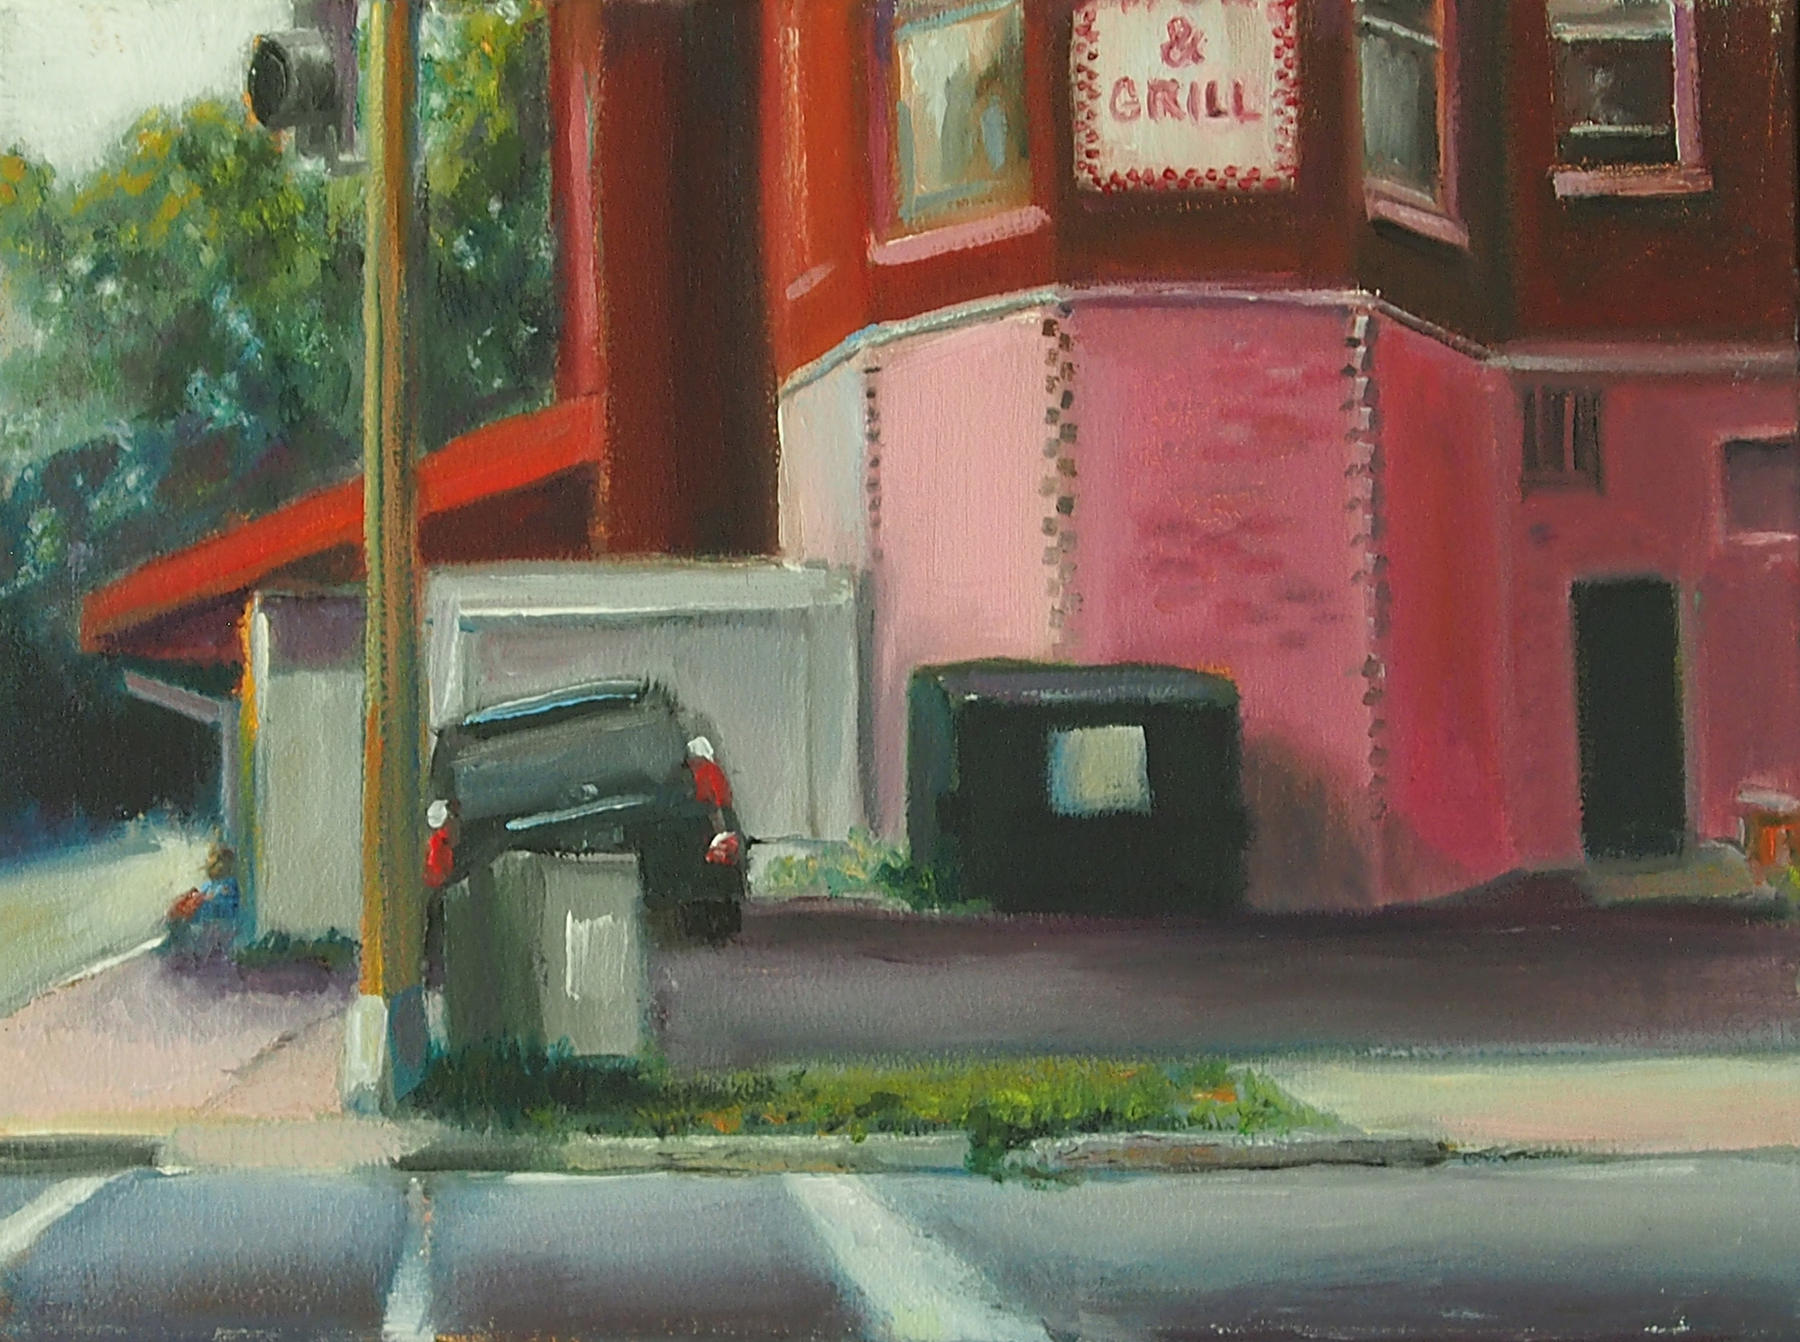 GalleryOonH-Cathy Abramson-Simon_s Wok and Grill-2016-Oil on Canvas-9x12-550.jpg